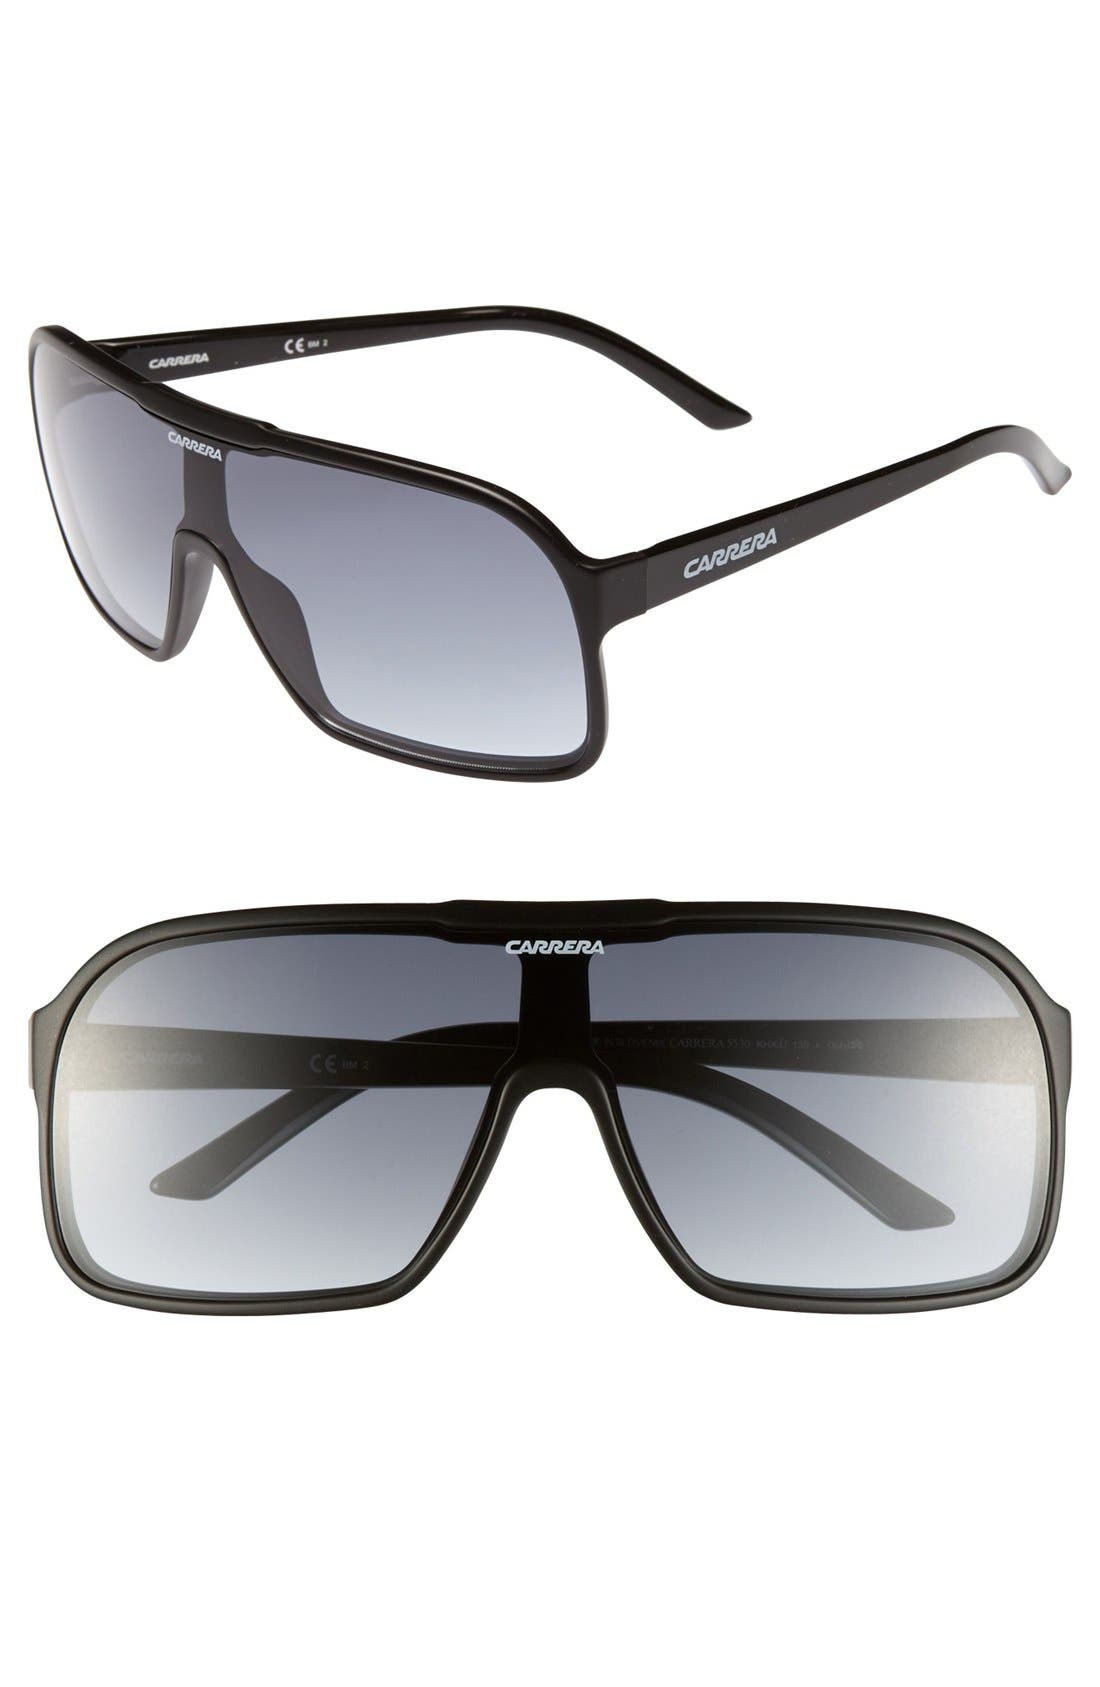 Alternate Image 1 Selected - Carrera Eyewear 99mm Aviator Sunglasses